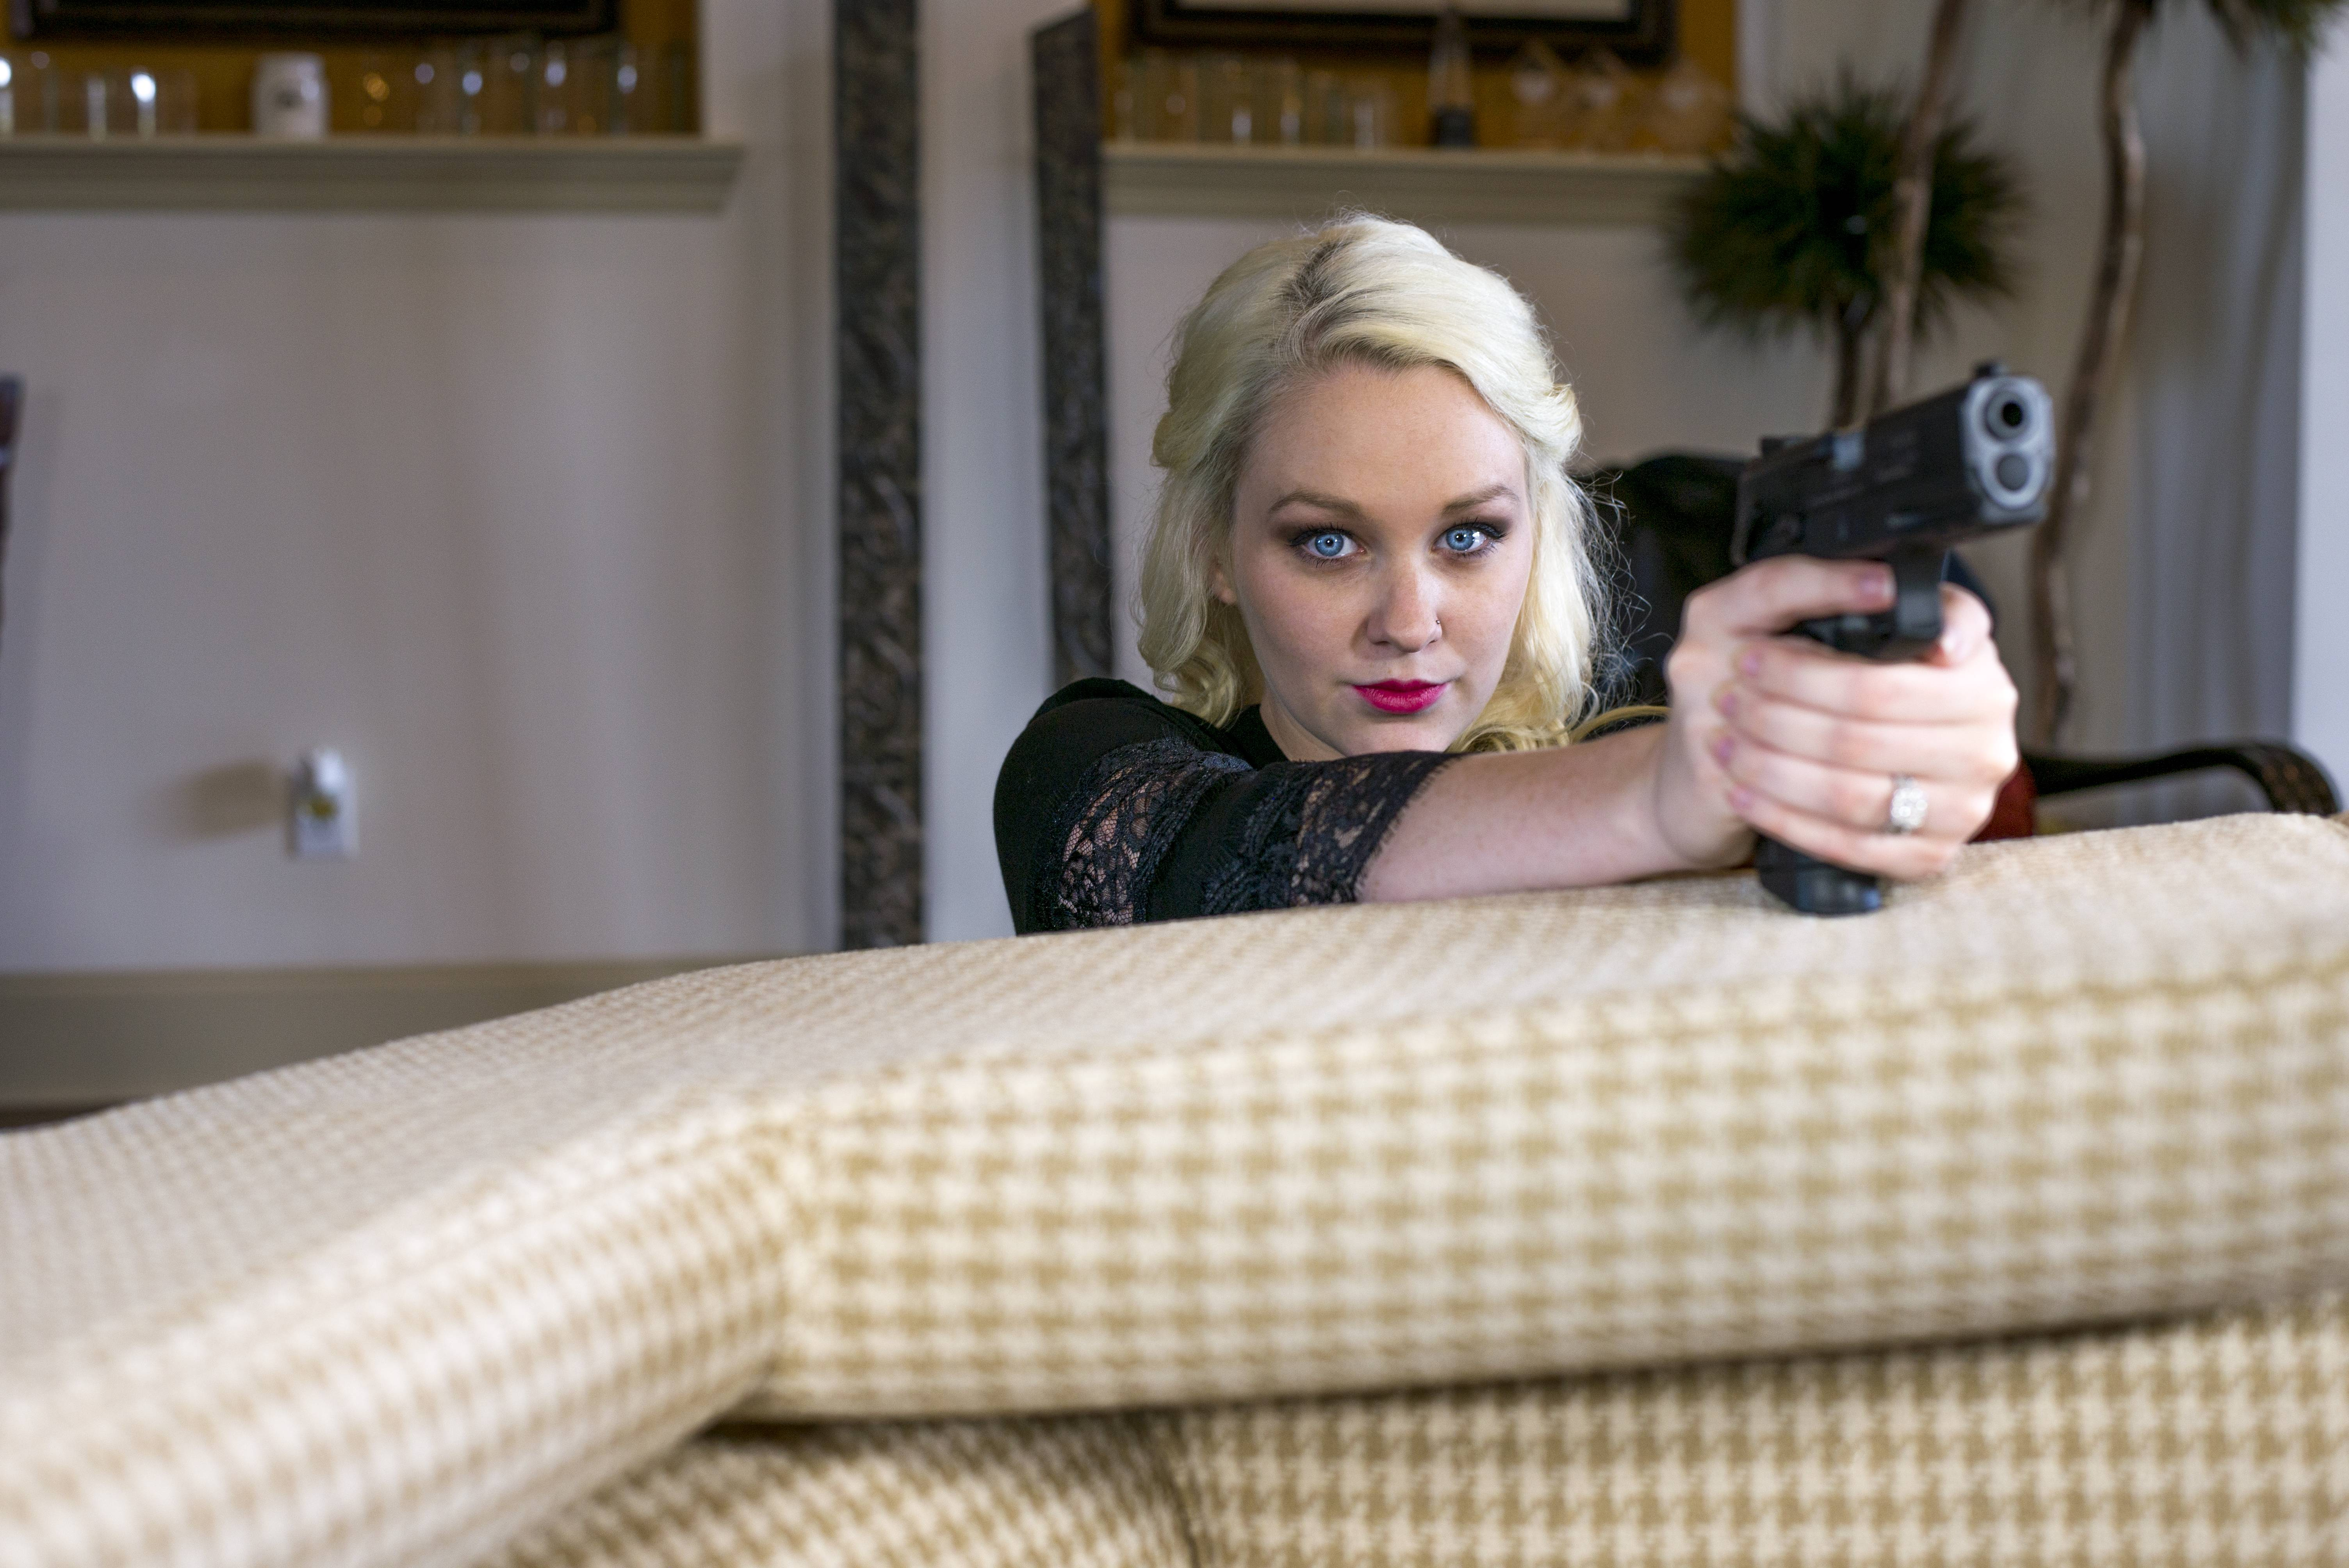 Couple Reenact Mr And Mrs Smith For Their Engagement Photo Album UNILAD mr and mrs smith couple 22